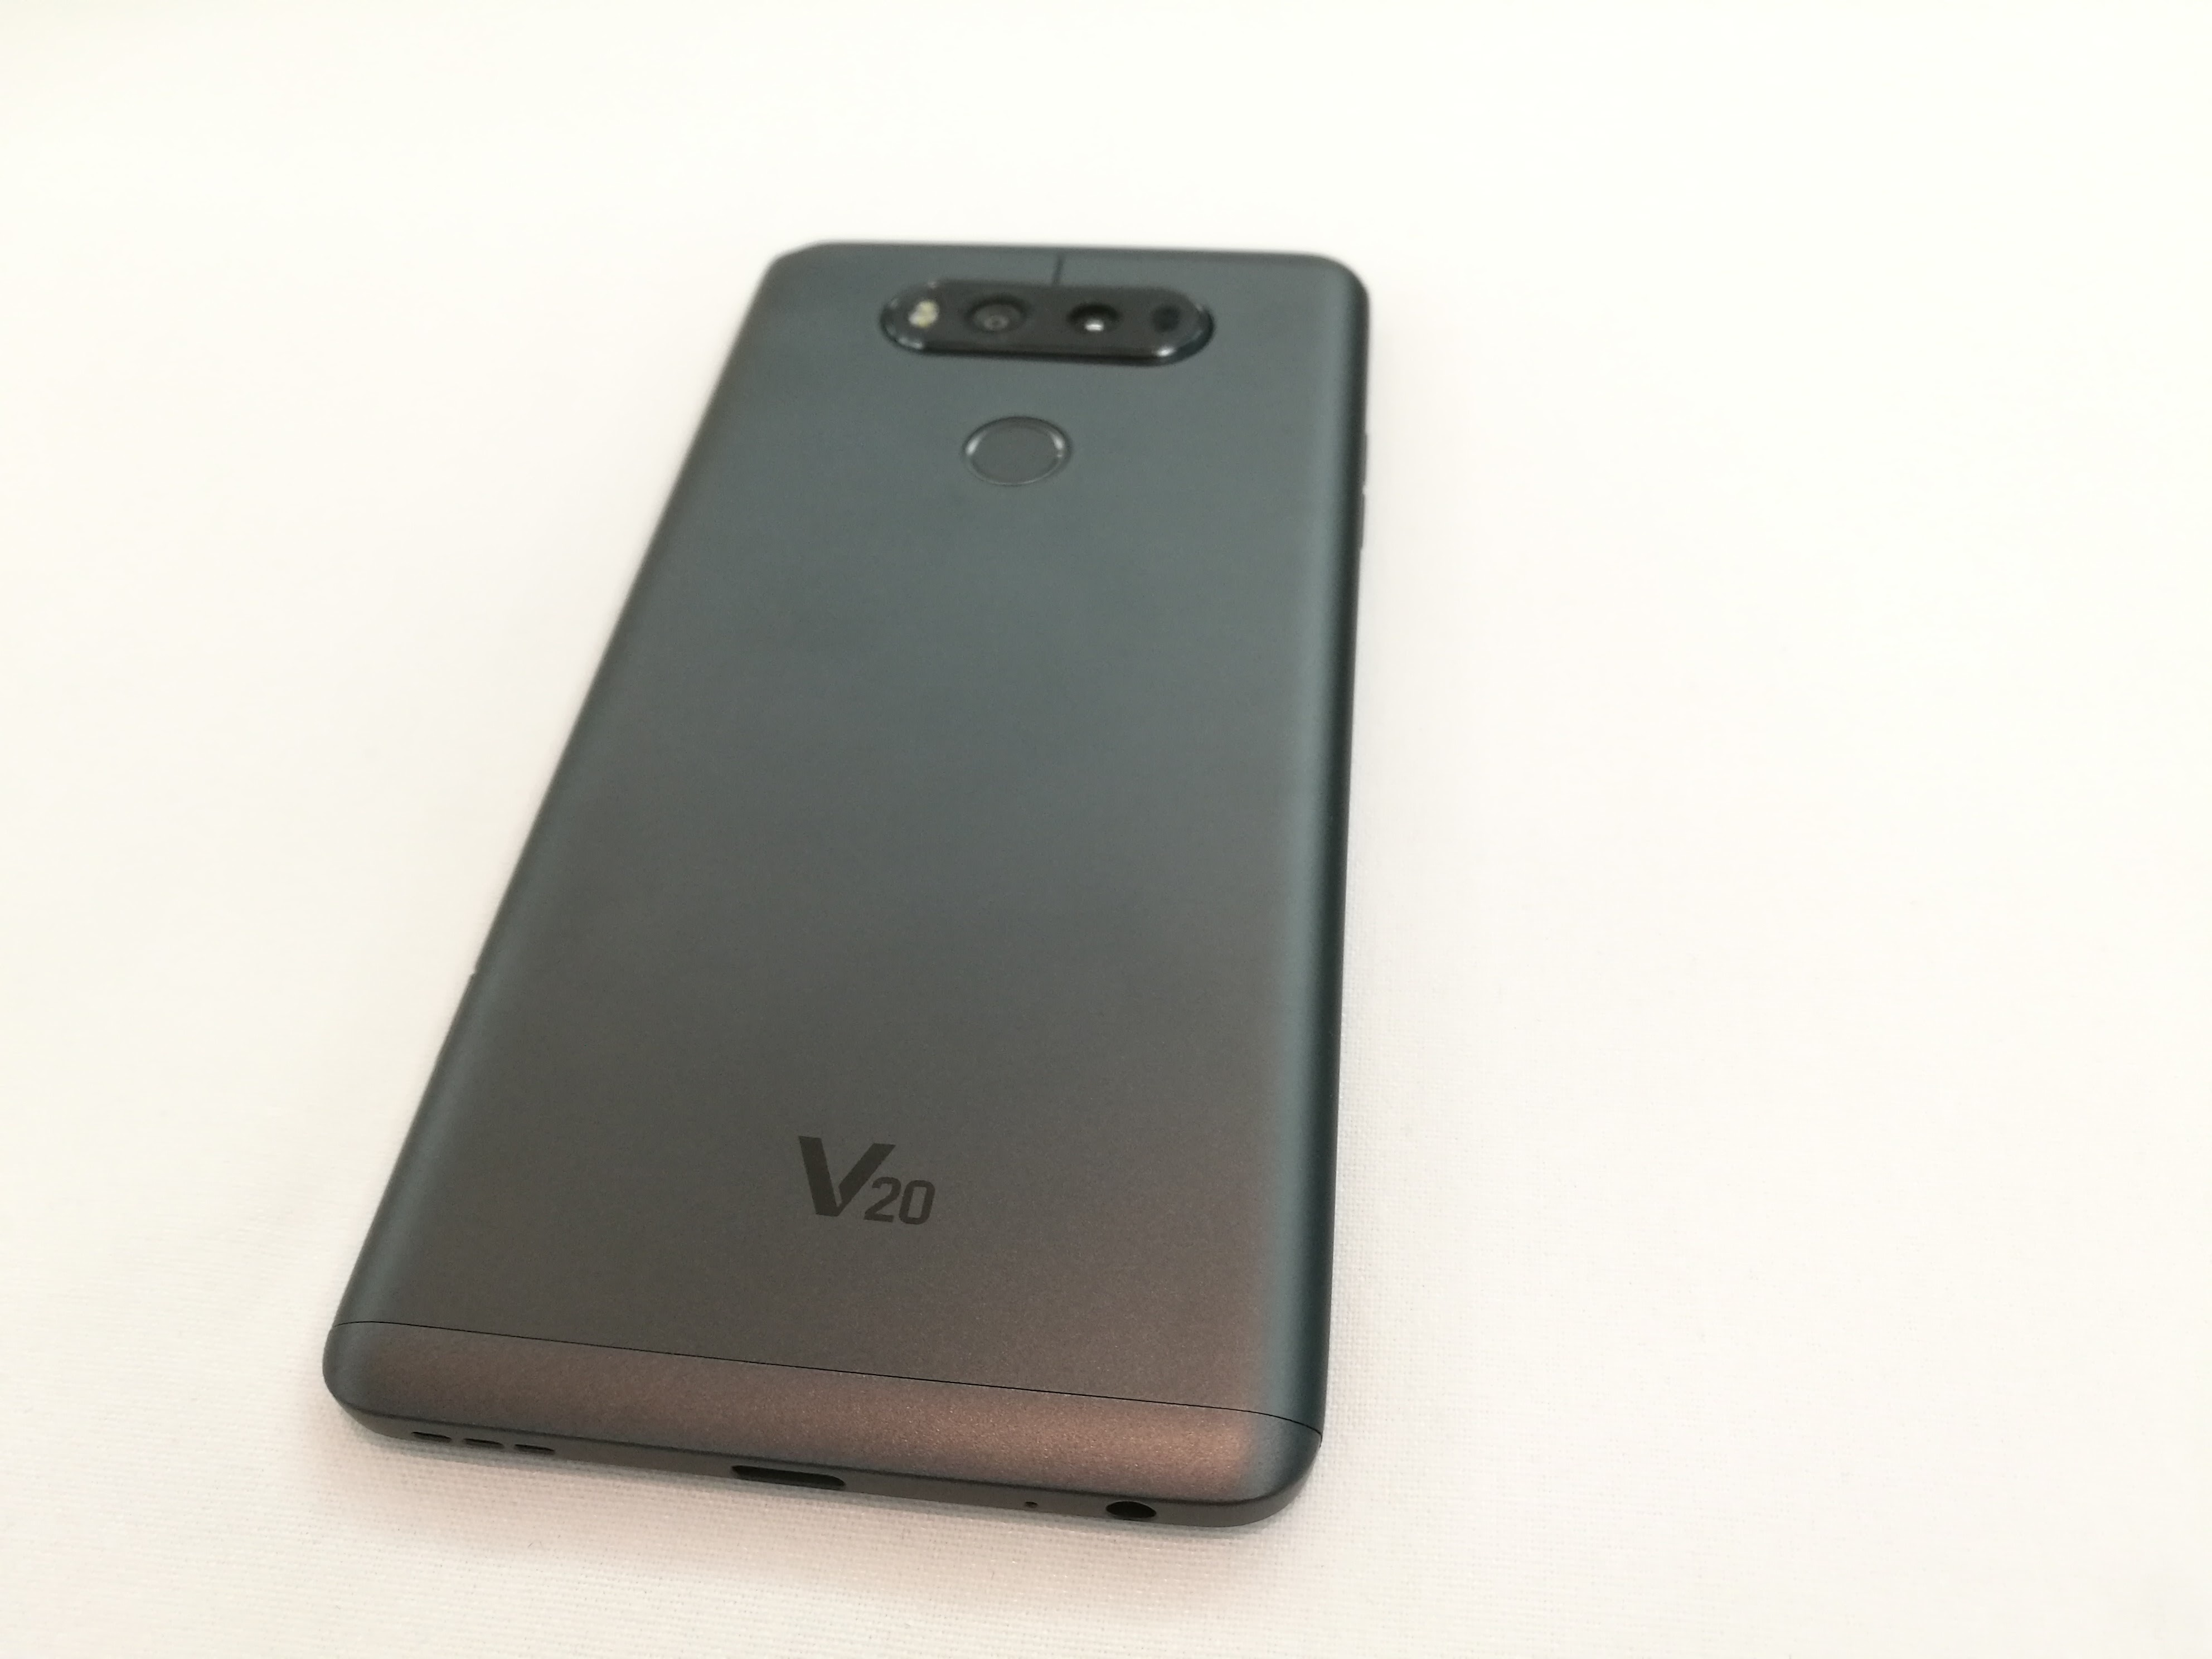 The back of the LG V20.